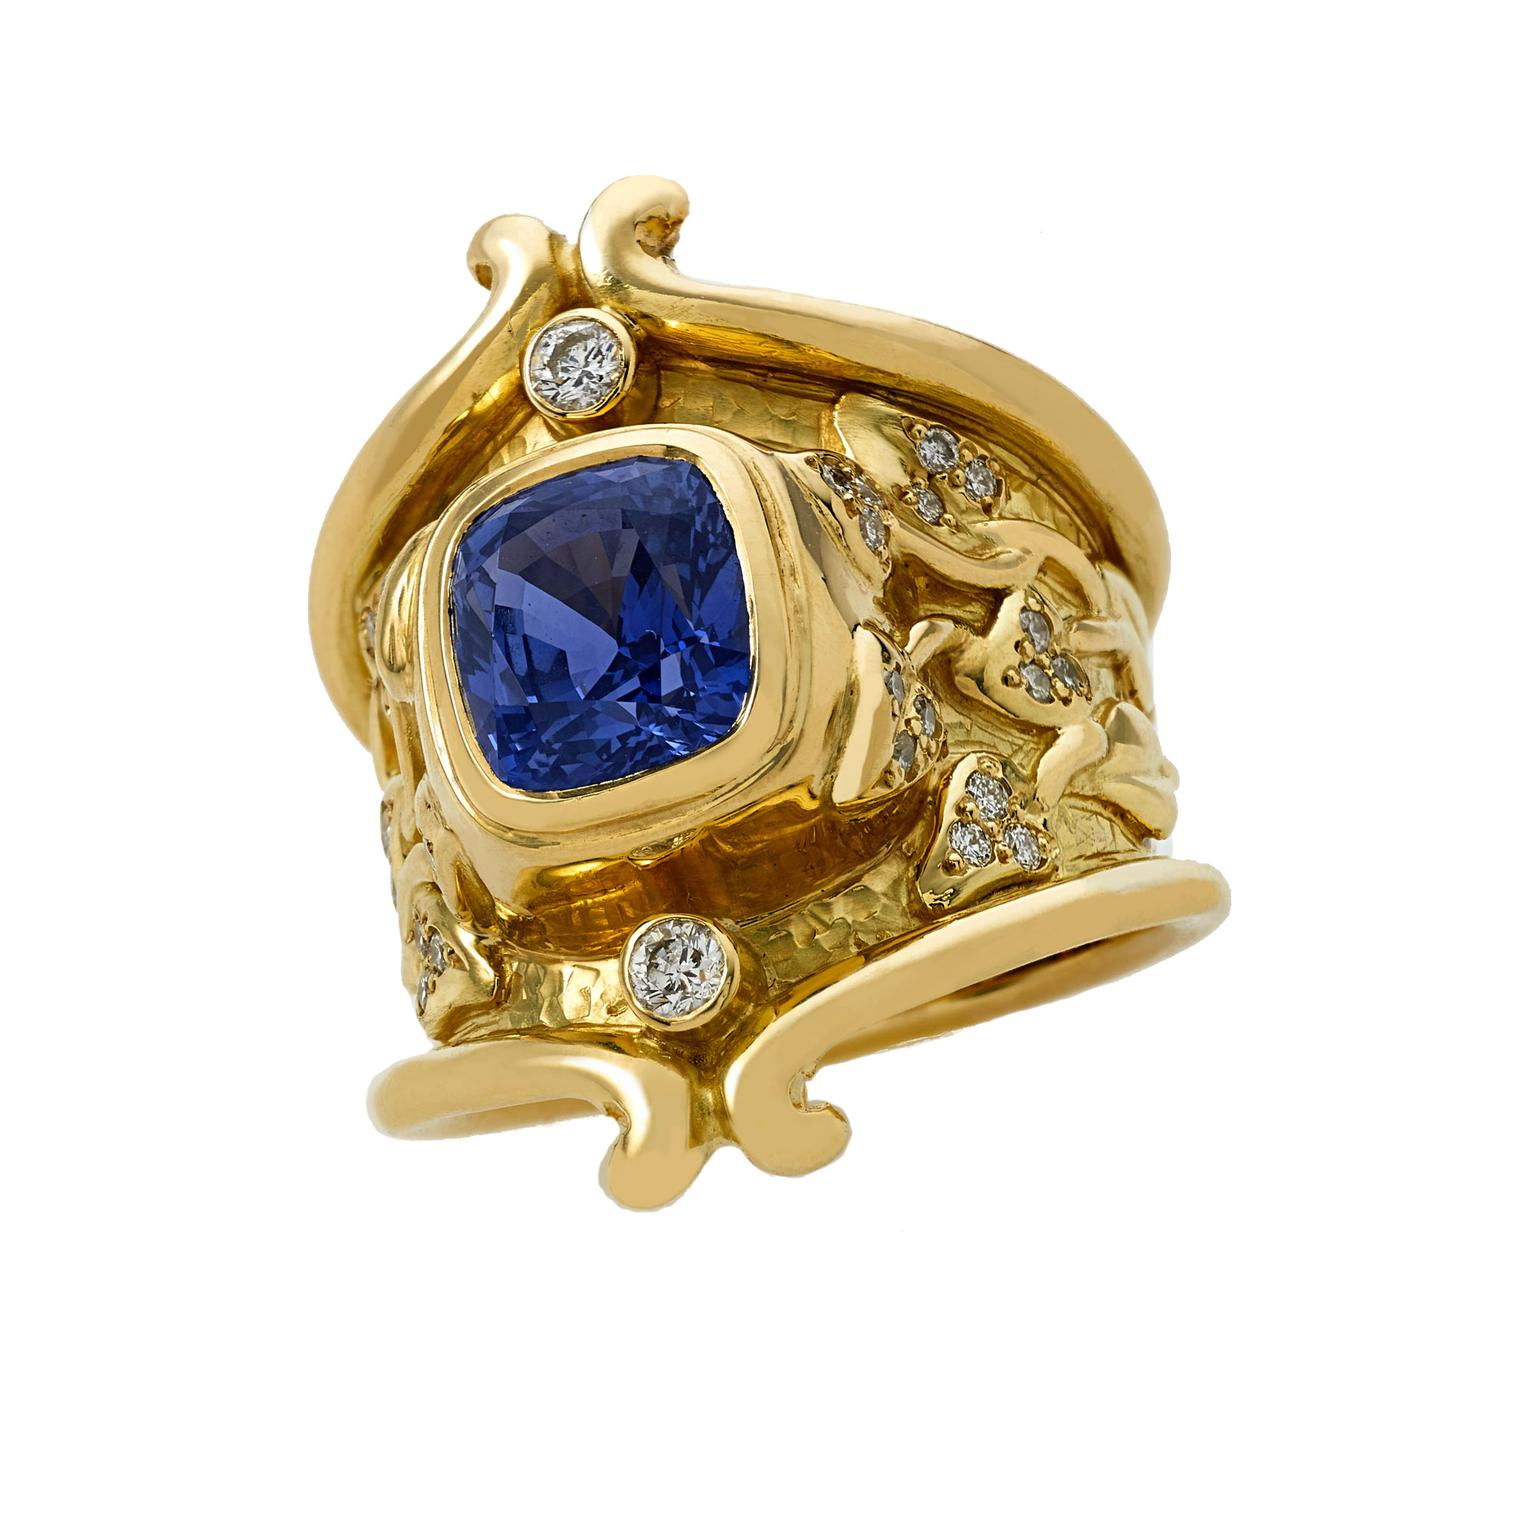 Elizabeth Gage sapphire and diamond ring